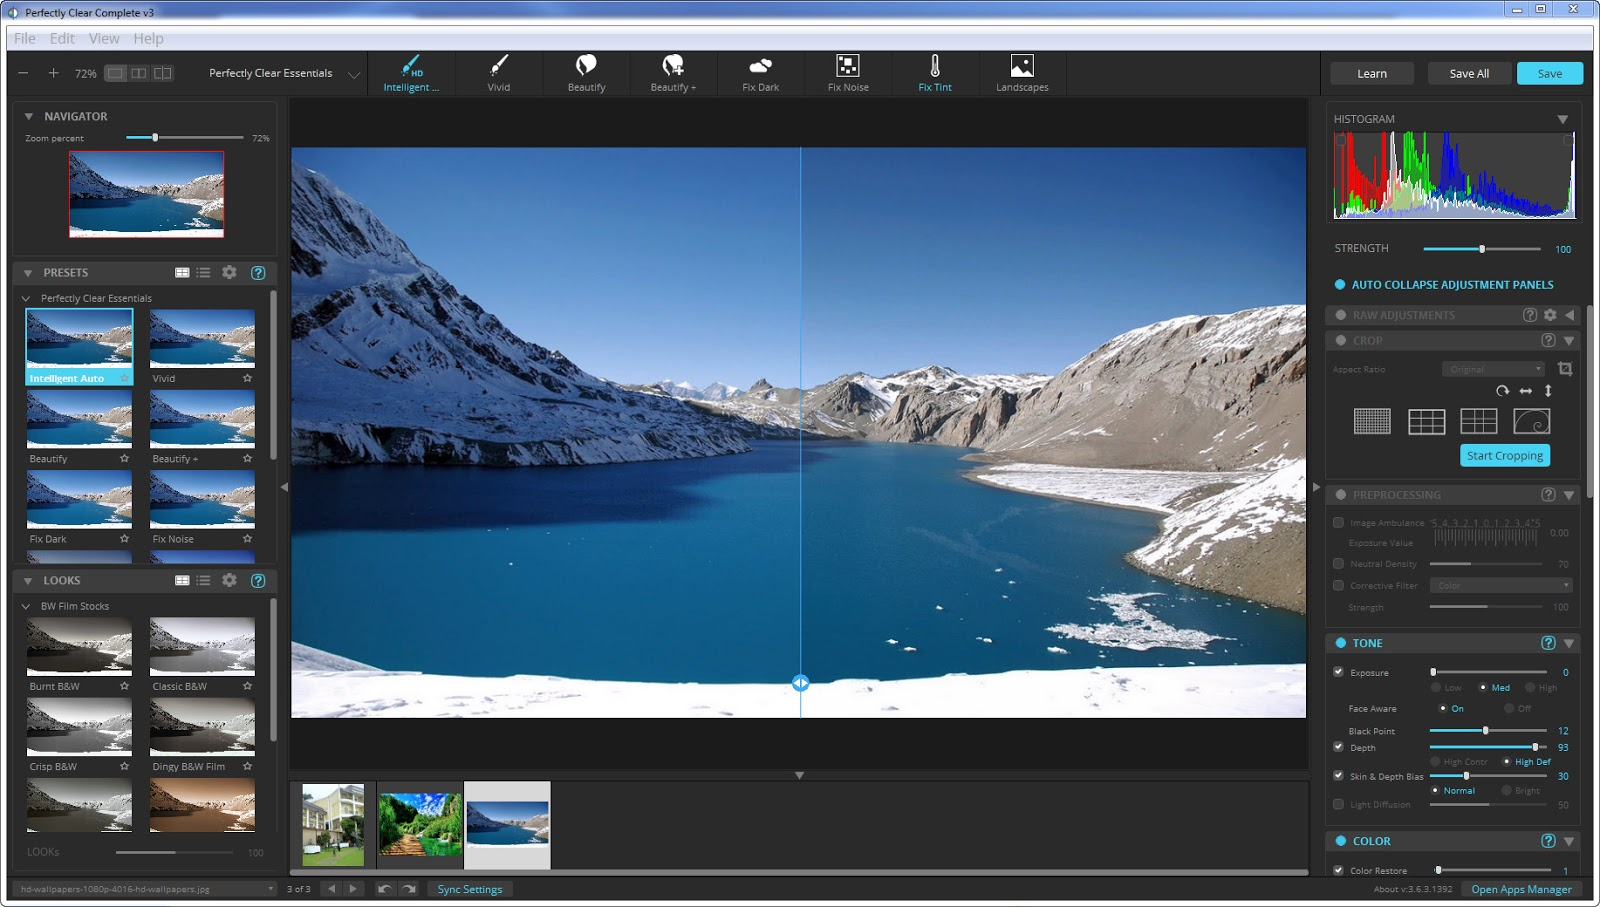 Perfectly Clear Complete v3.6.3.1392 Full version